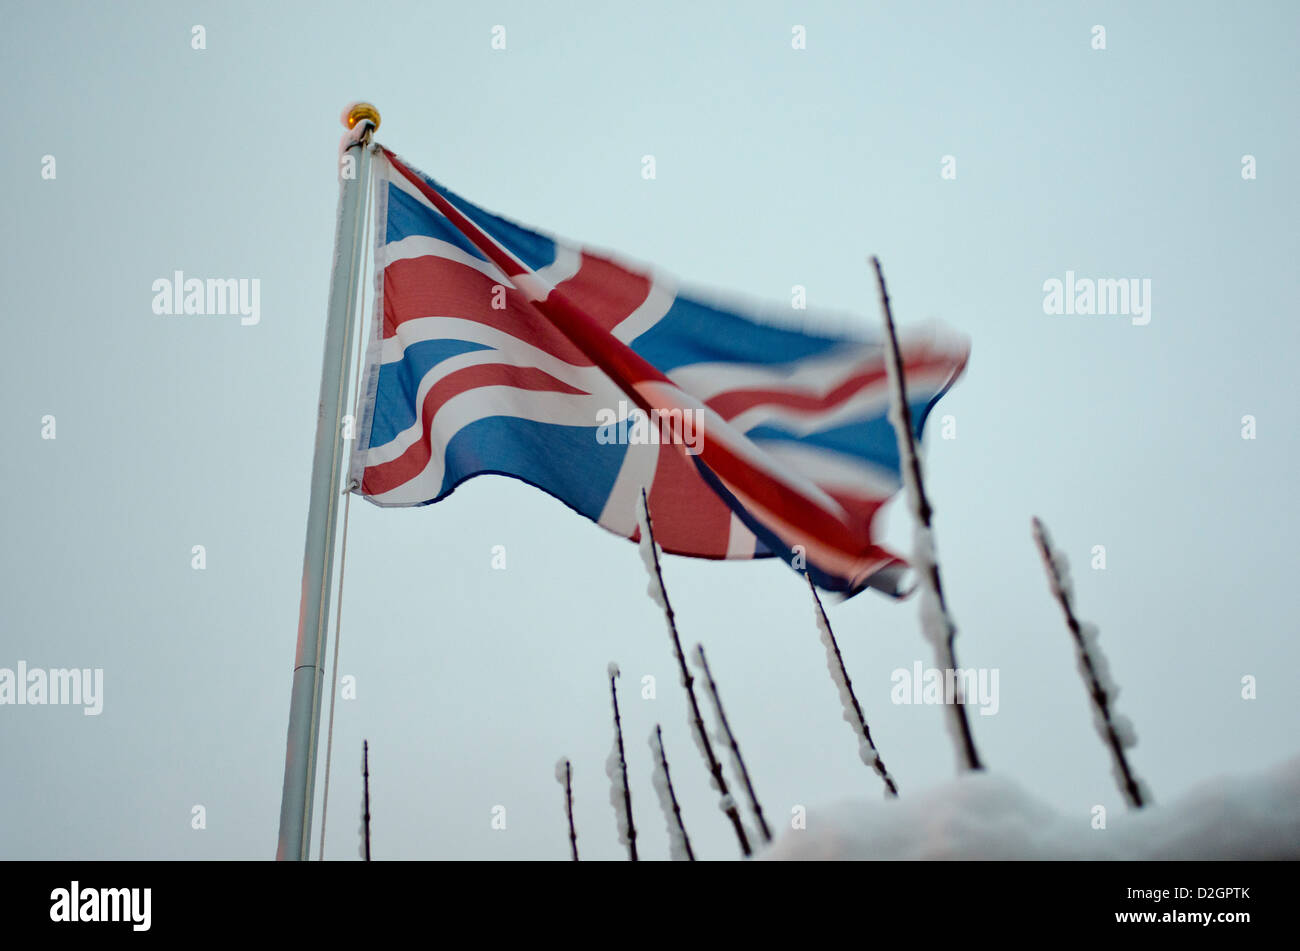 union jack flag in snow - Stock Image